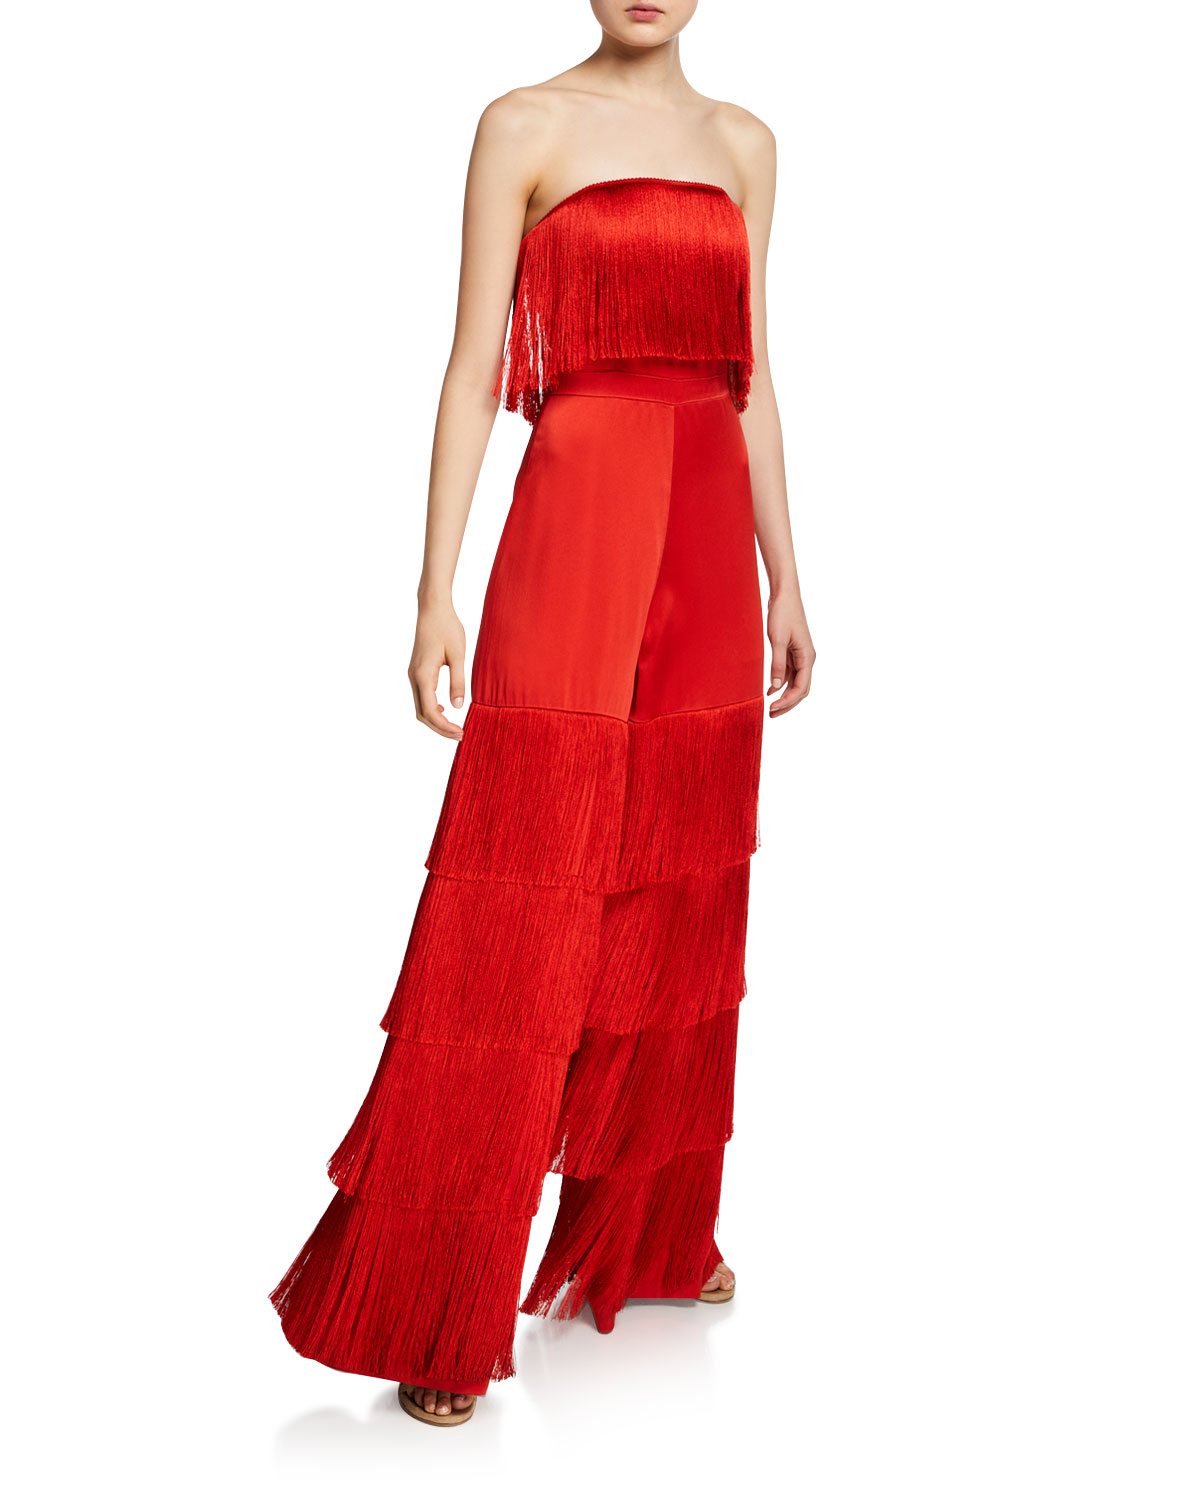 Maxima Strapless Satin Fringe Jumpsuit in Red